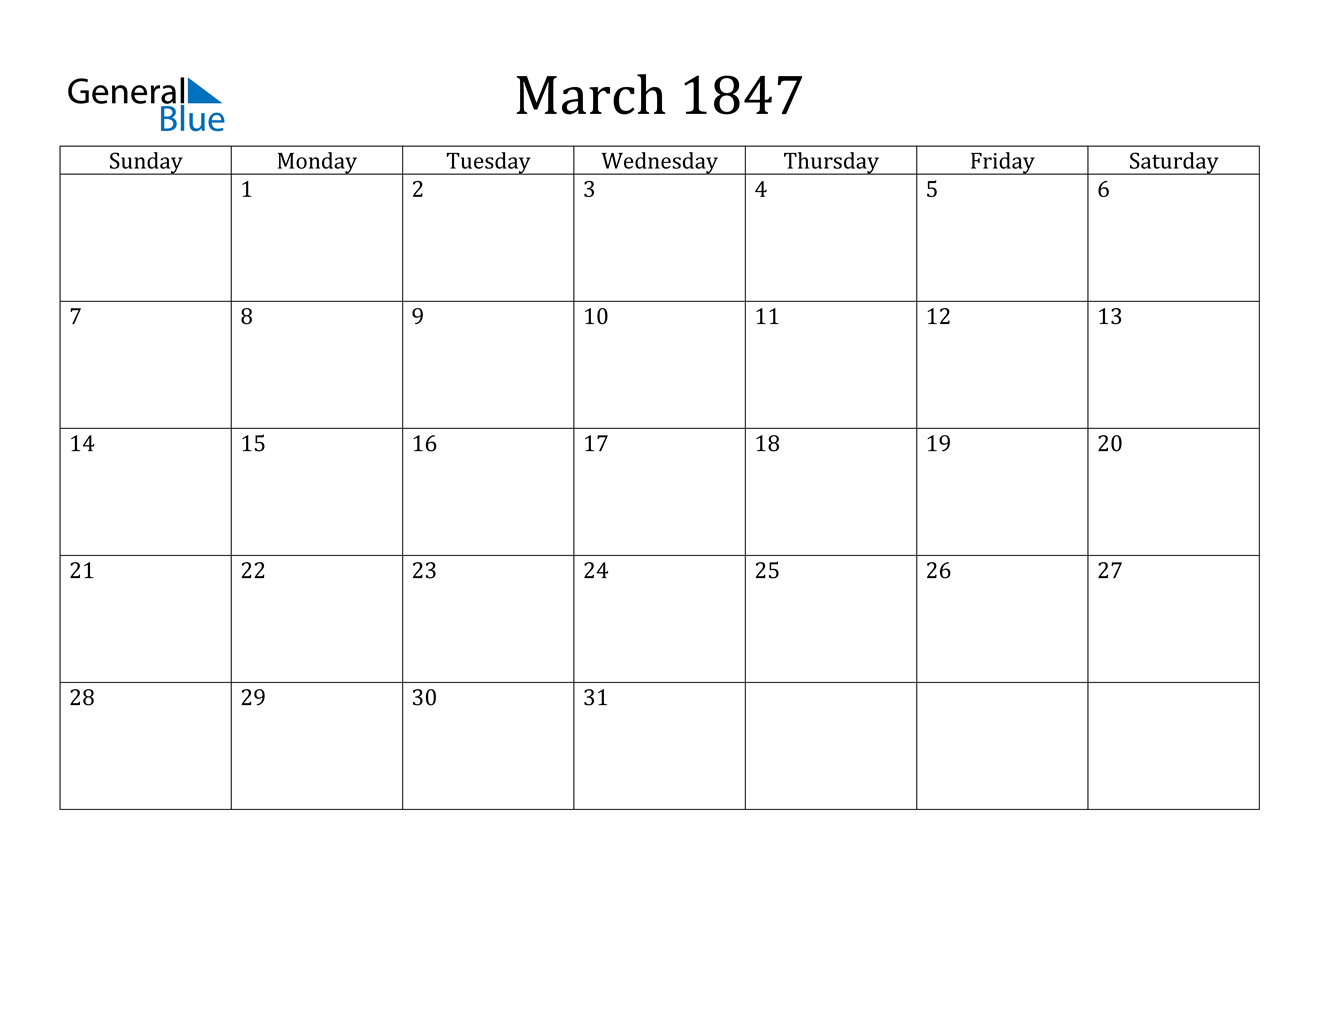 Image of March 1847 Calendar